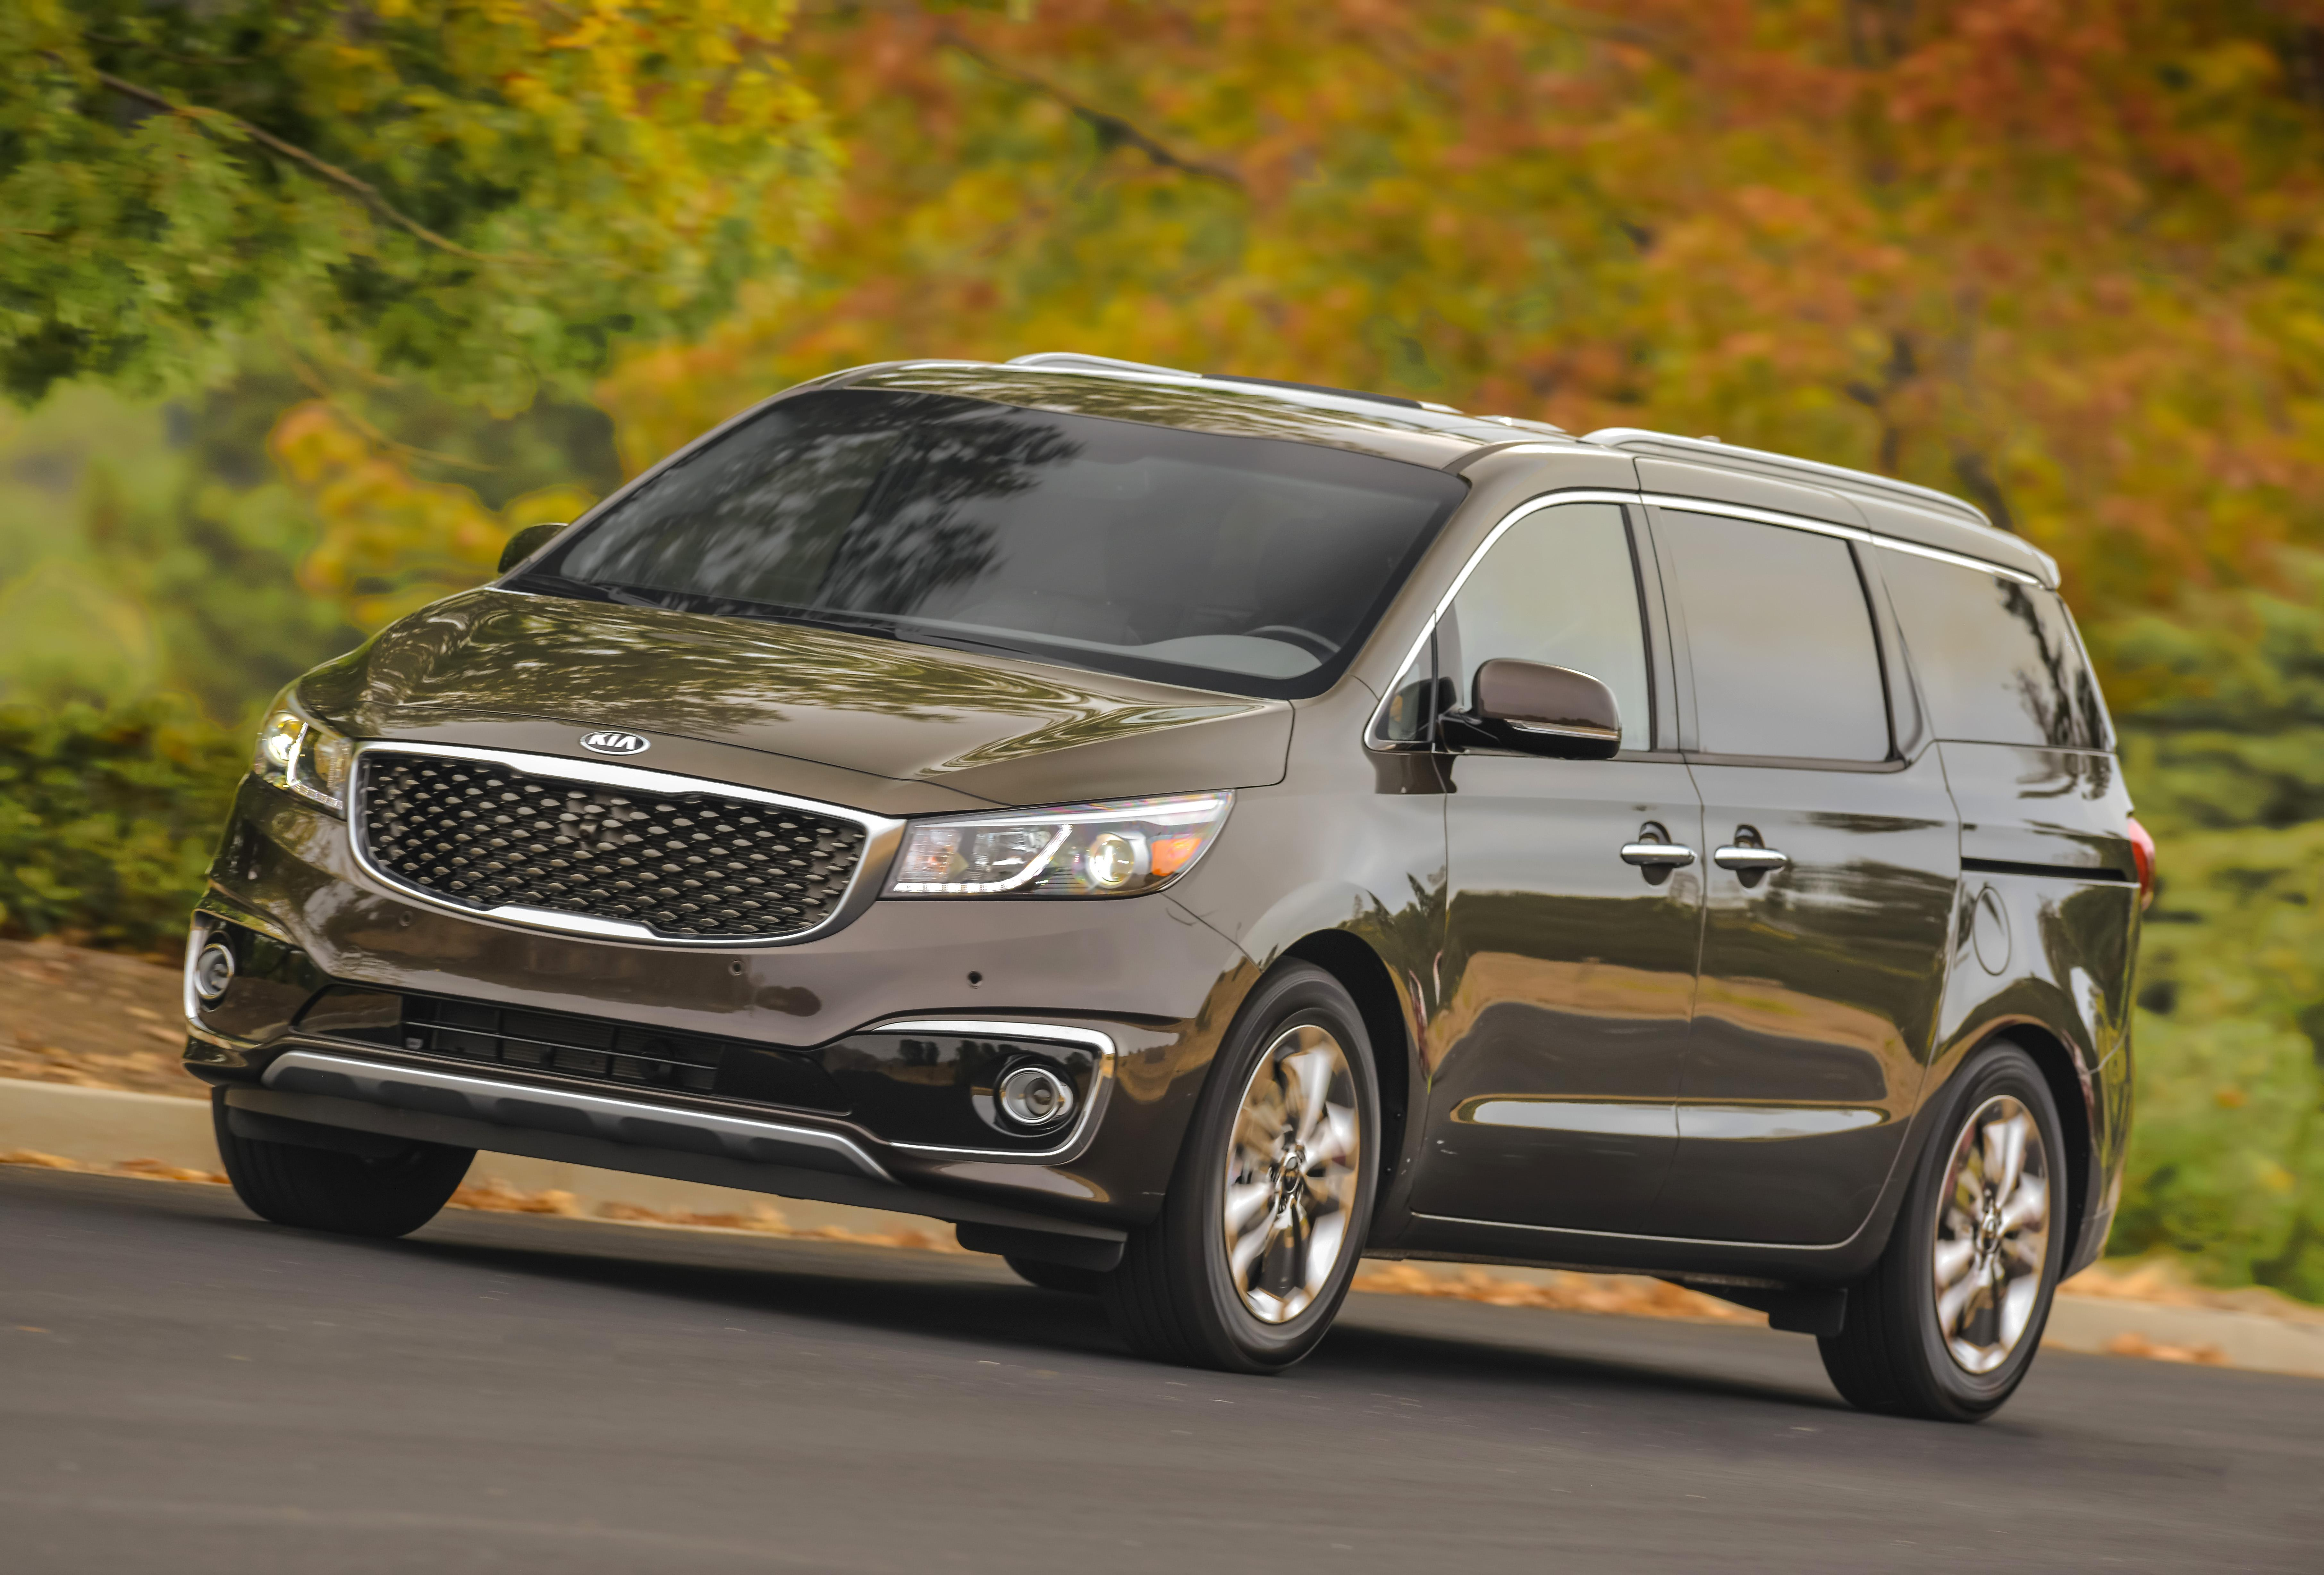 dvd tag player car review with package fuse kia image into sedona two the steps used strikes of